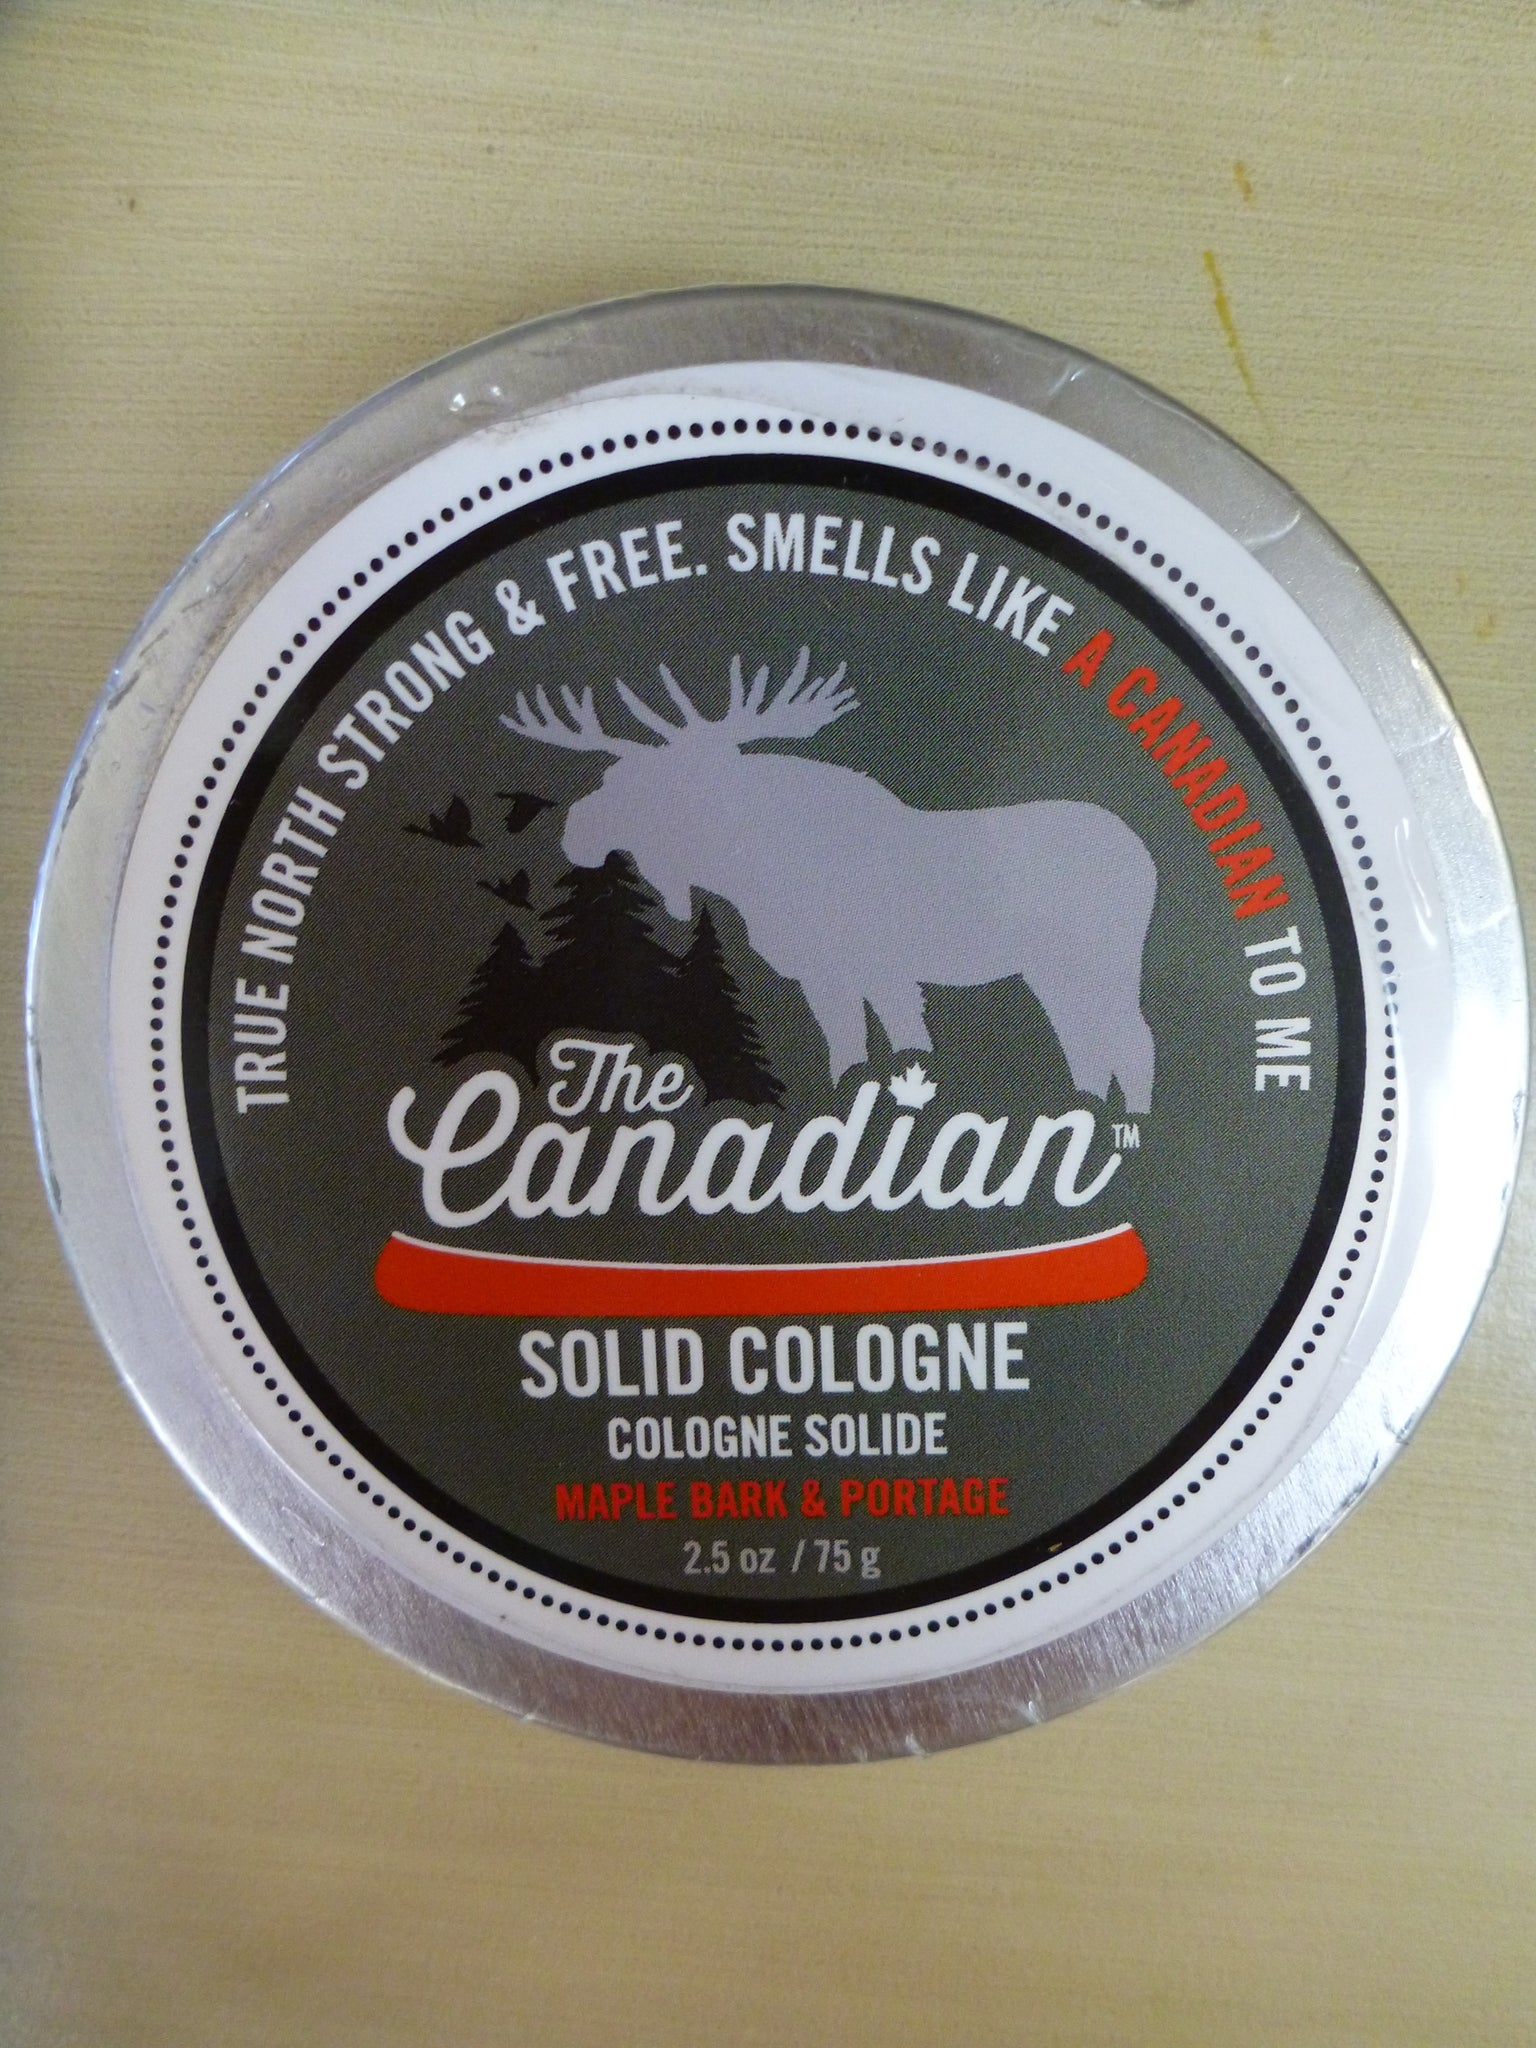 The Canadian Solid Cologne 2.5oz